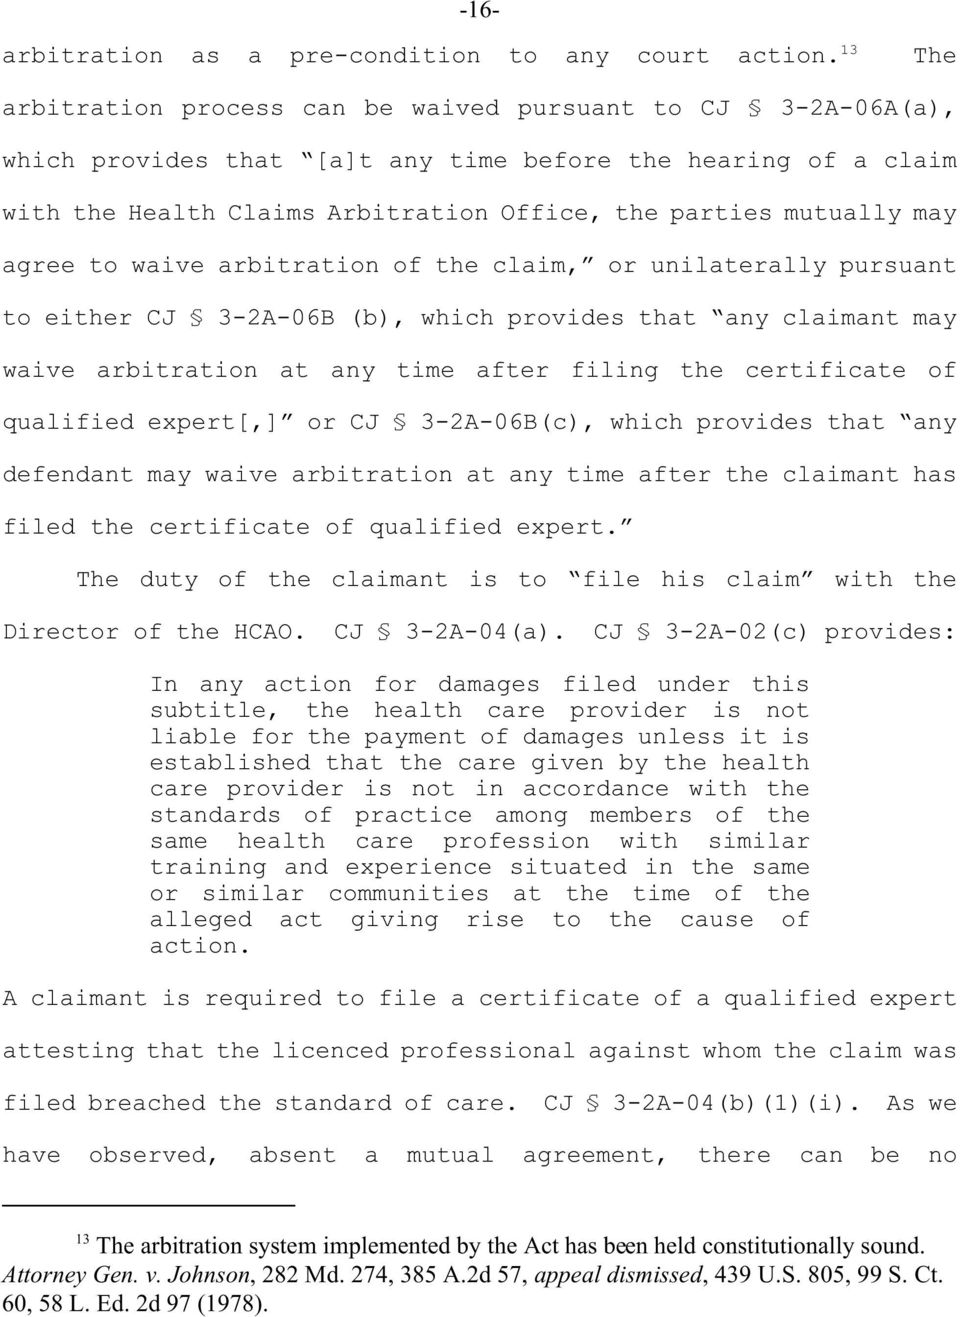 may agree to waive arbitration of the claim, or unilaterally pursuant to either CJ 3-2A-06B (b), which provides that any claimant may waive arbitration at any time after filing the certificate of